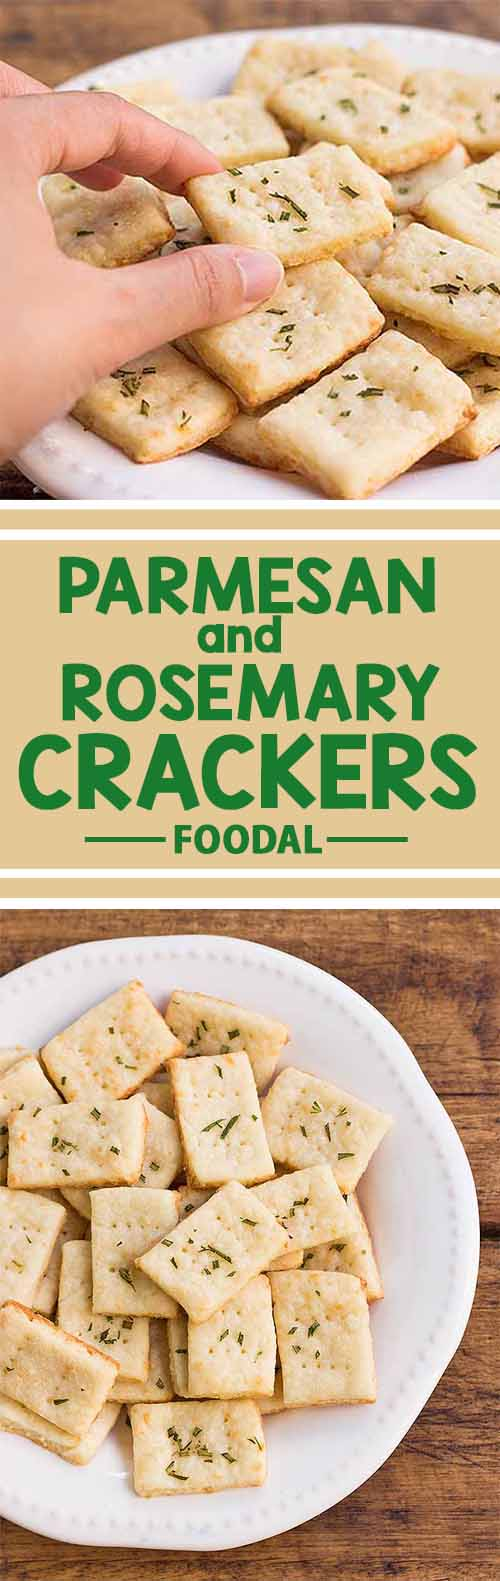 Homemade parmesan and rosemary crackers foodal if youve never tried making your own homemade crackers before youll solutioingenieria Choice Image